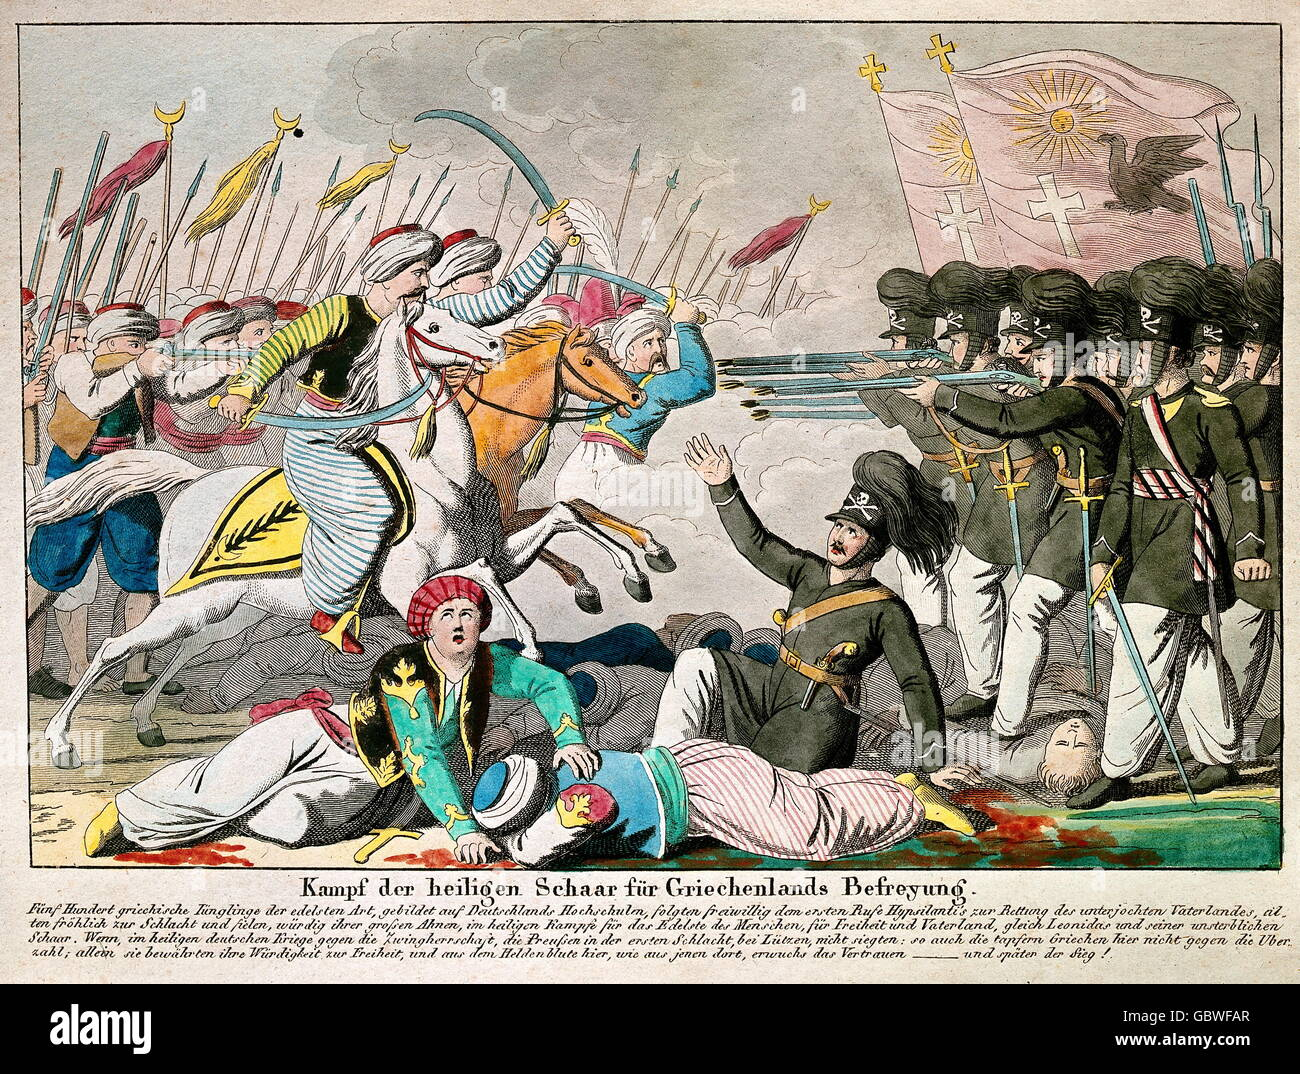 geography / travel, Germany, Greece, war of independence, 1821 - 1829, The  Sacred Band of Thebes figthing against the Turk, Turkish men, print,  published by ...